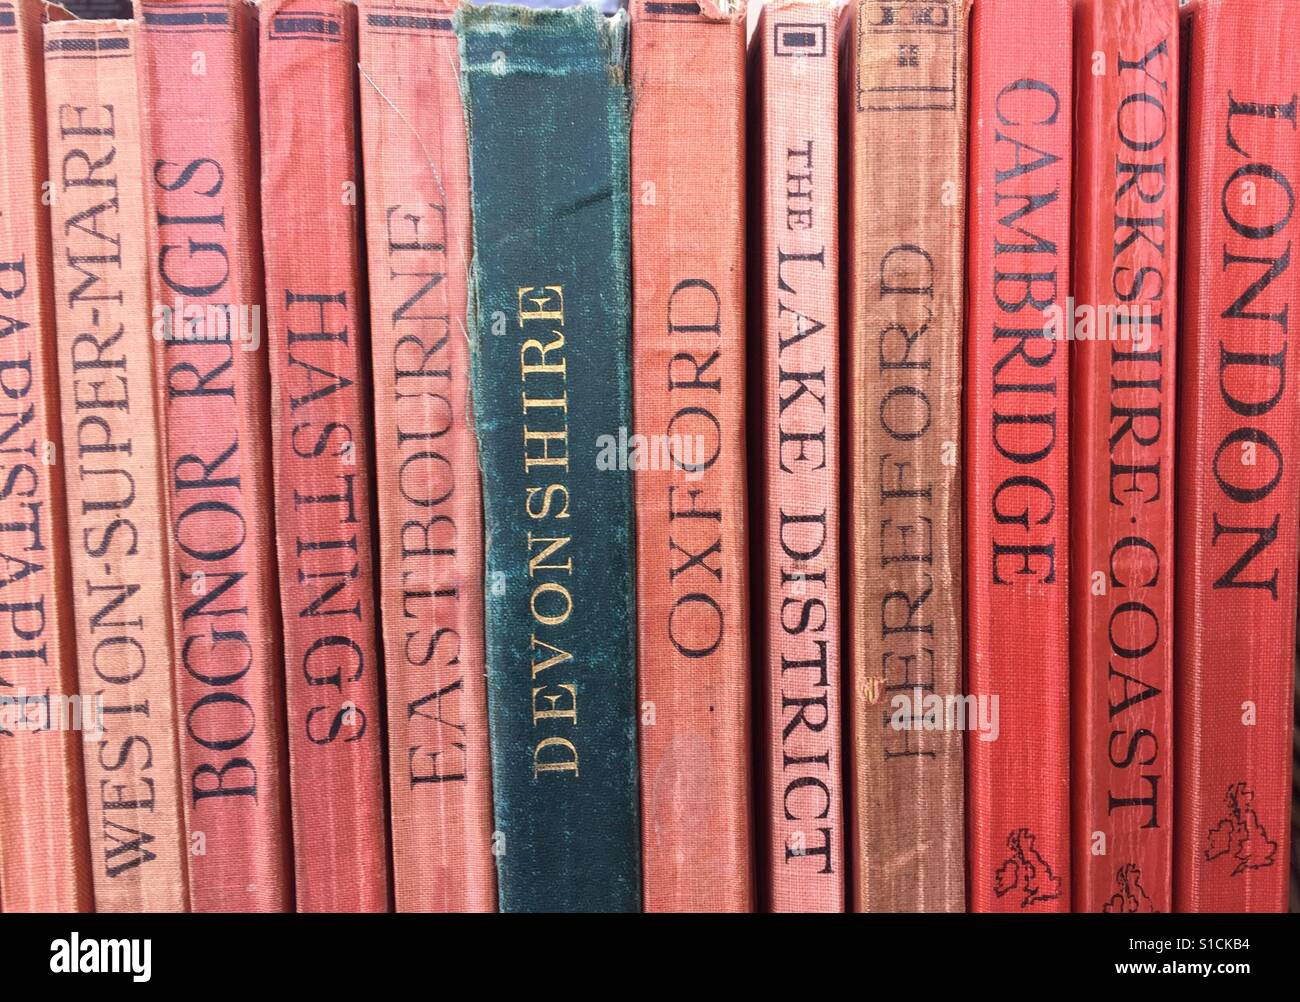 Selection of vintage travel guides to British destinations for sale in street market stall - Stock Image